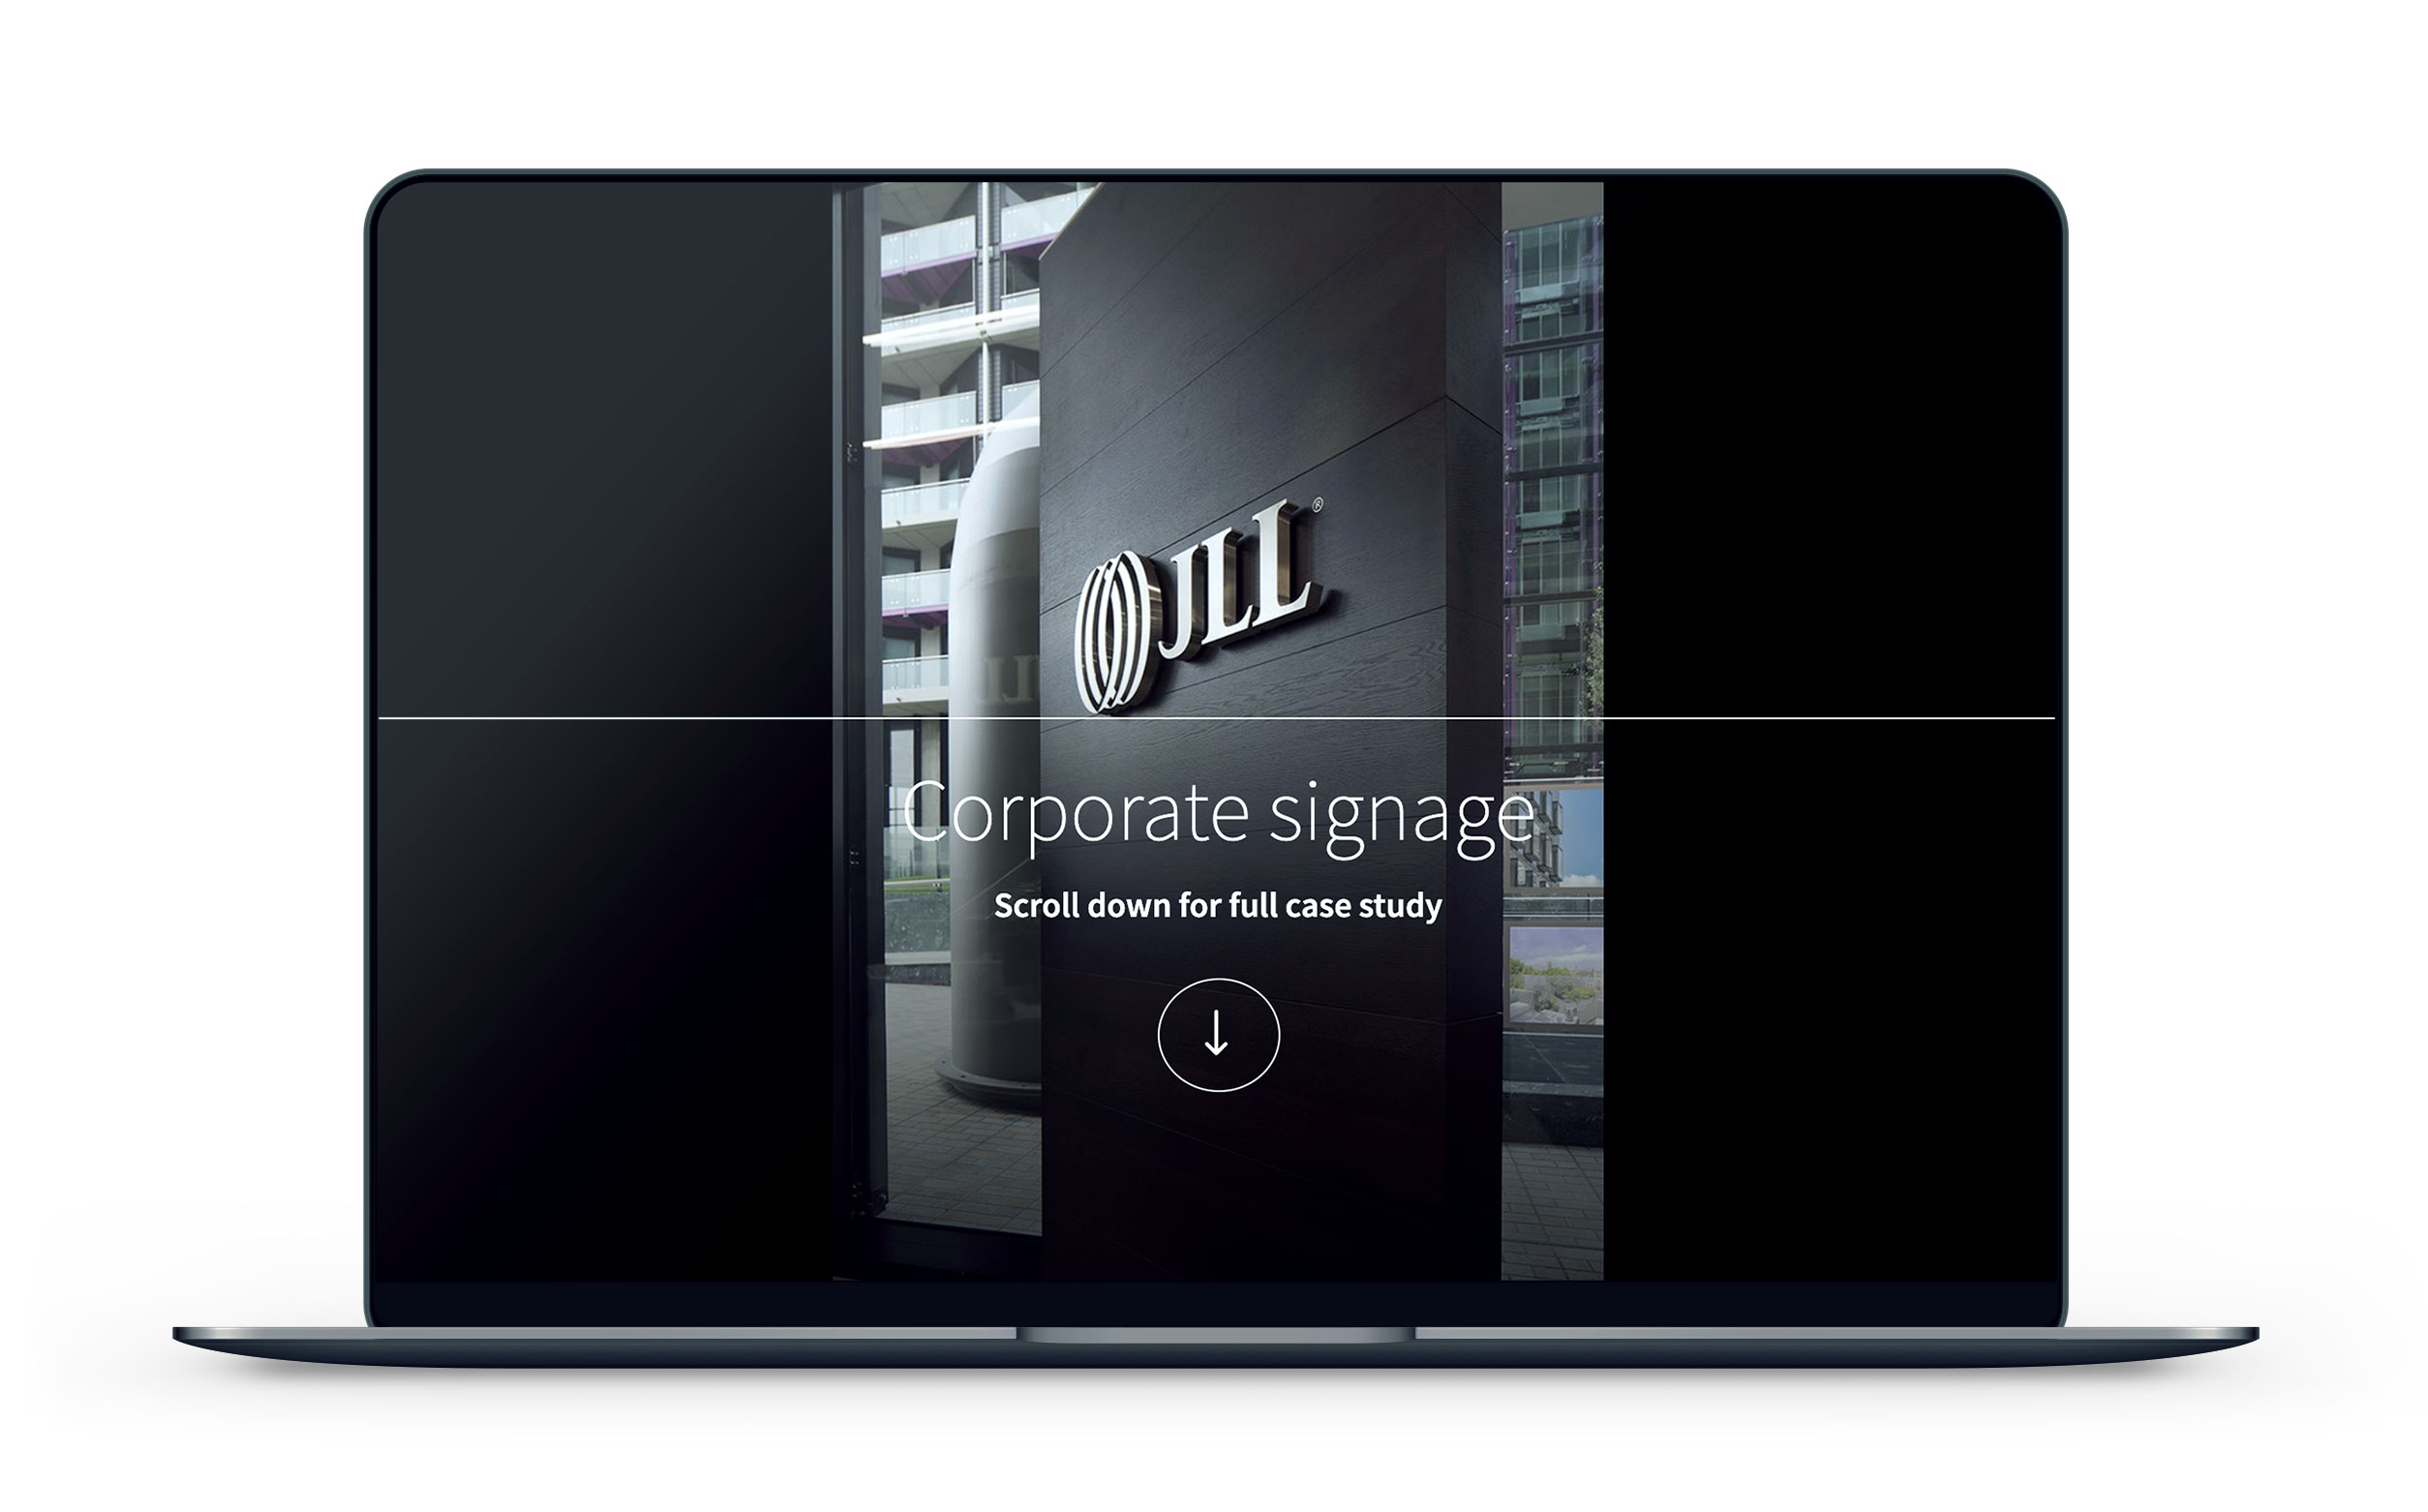 JLL_Showcase_laptop